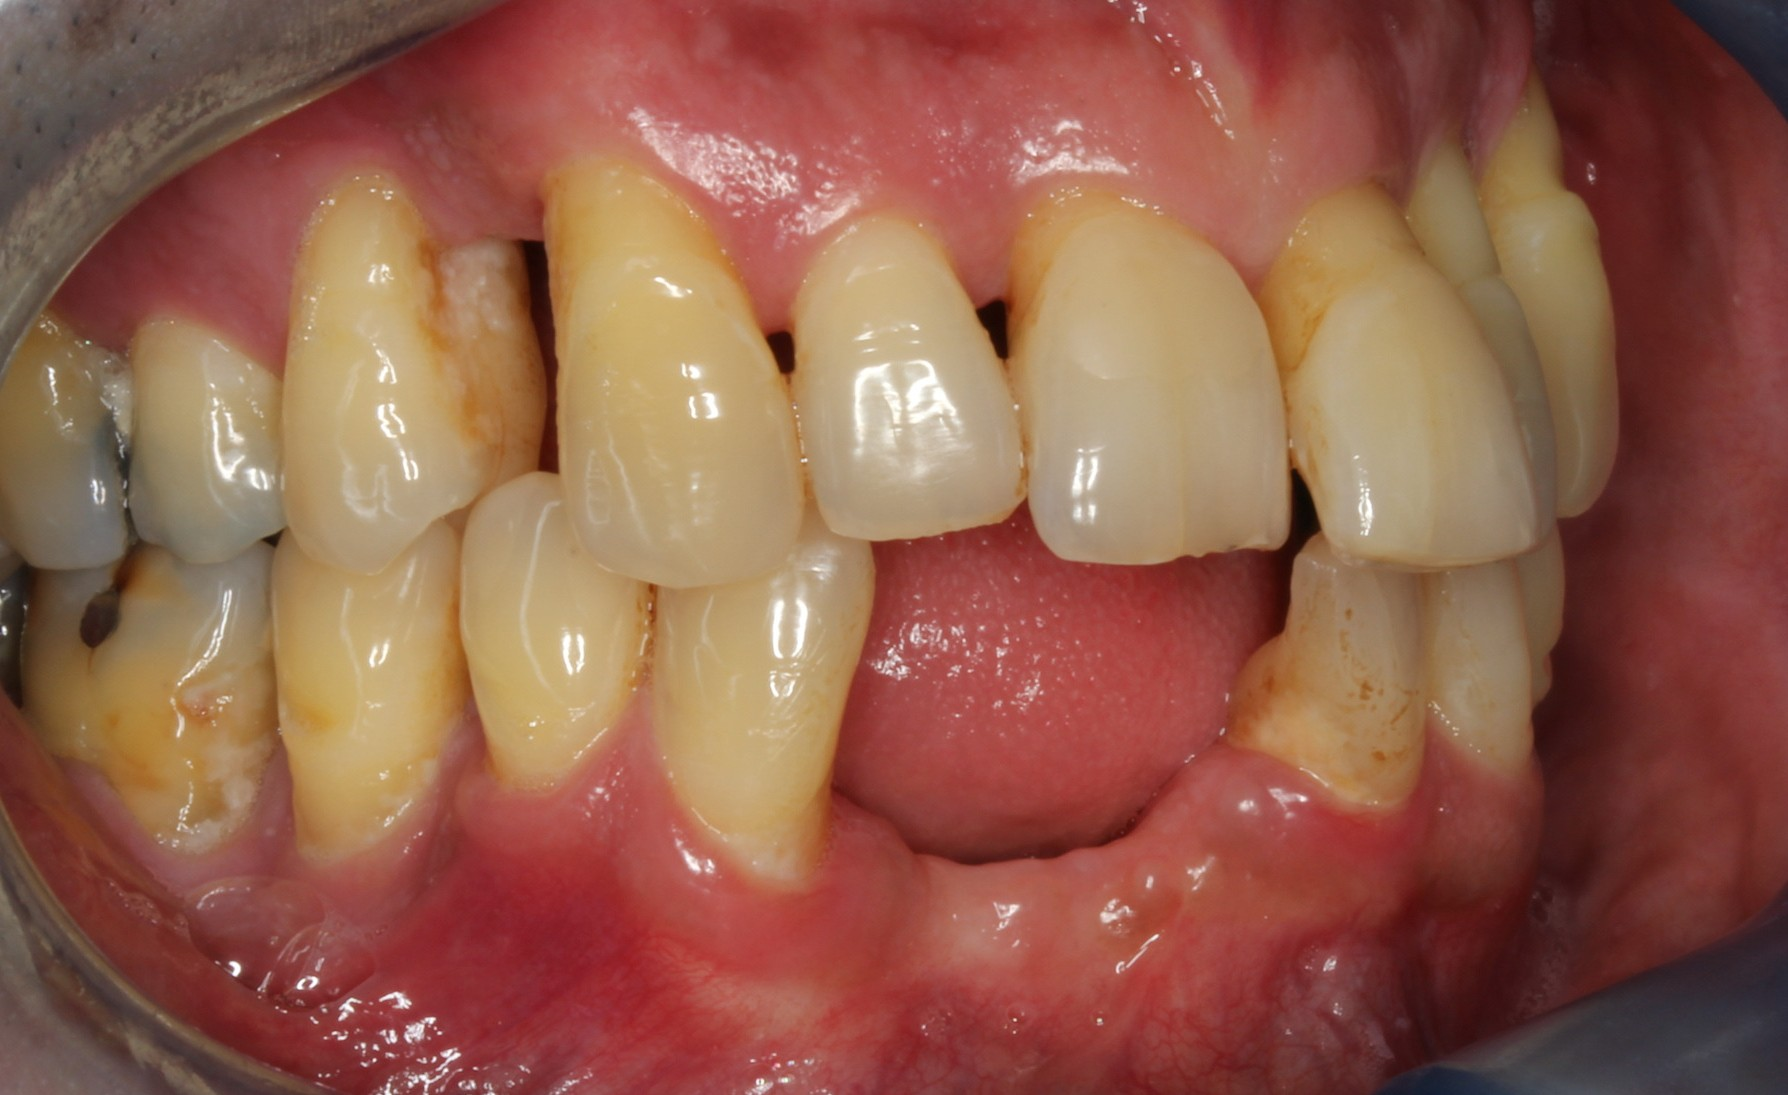 patient presented with tooth caused by sinus infection right aspect